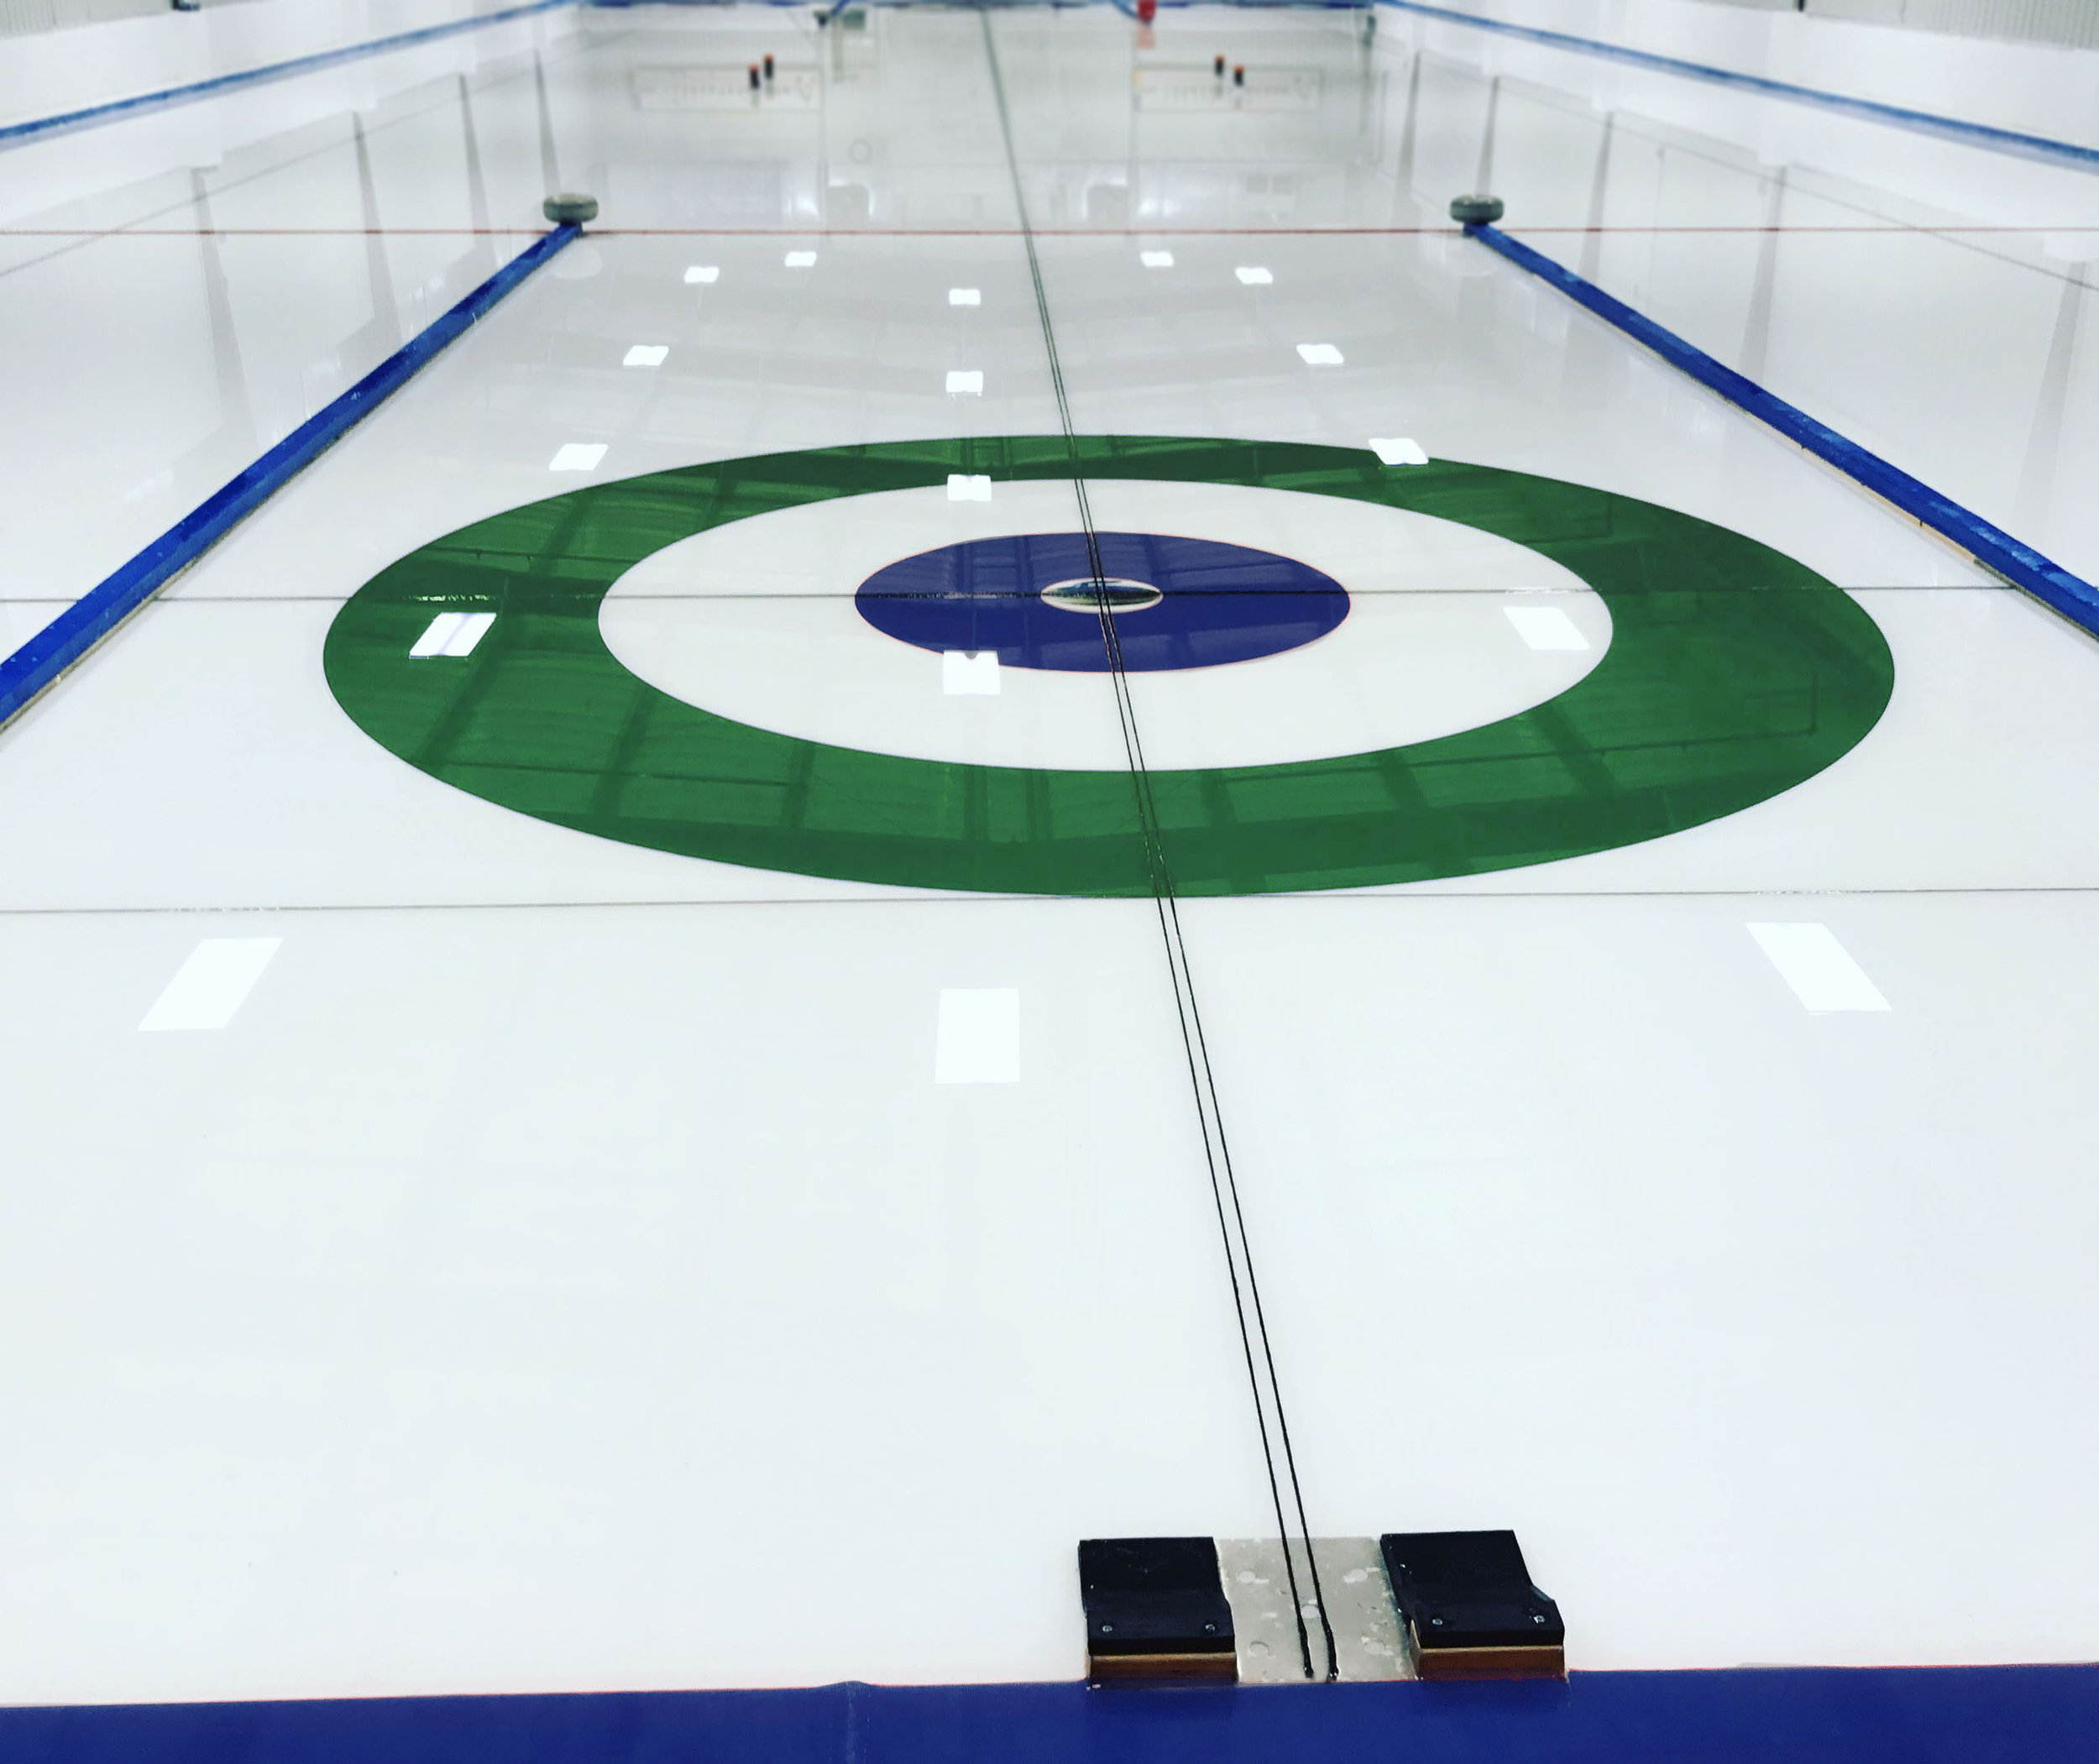 Inclusive Community Curling